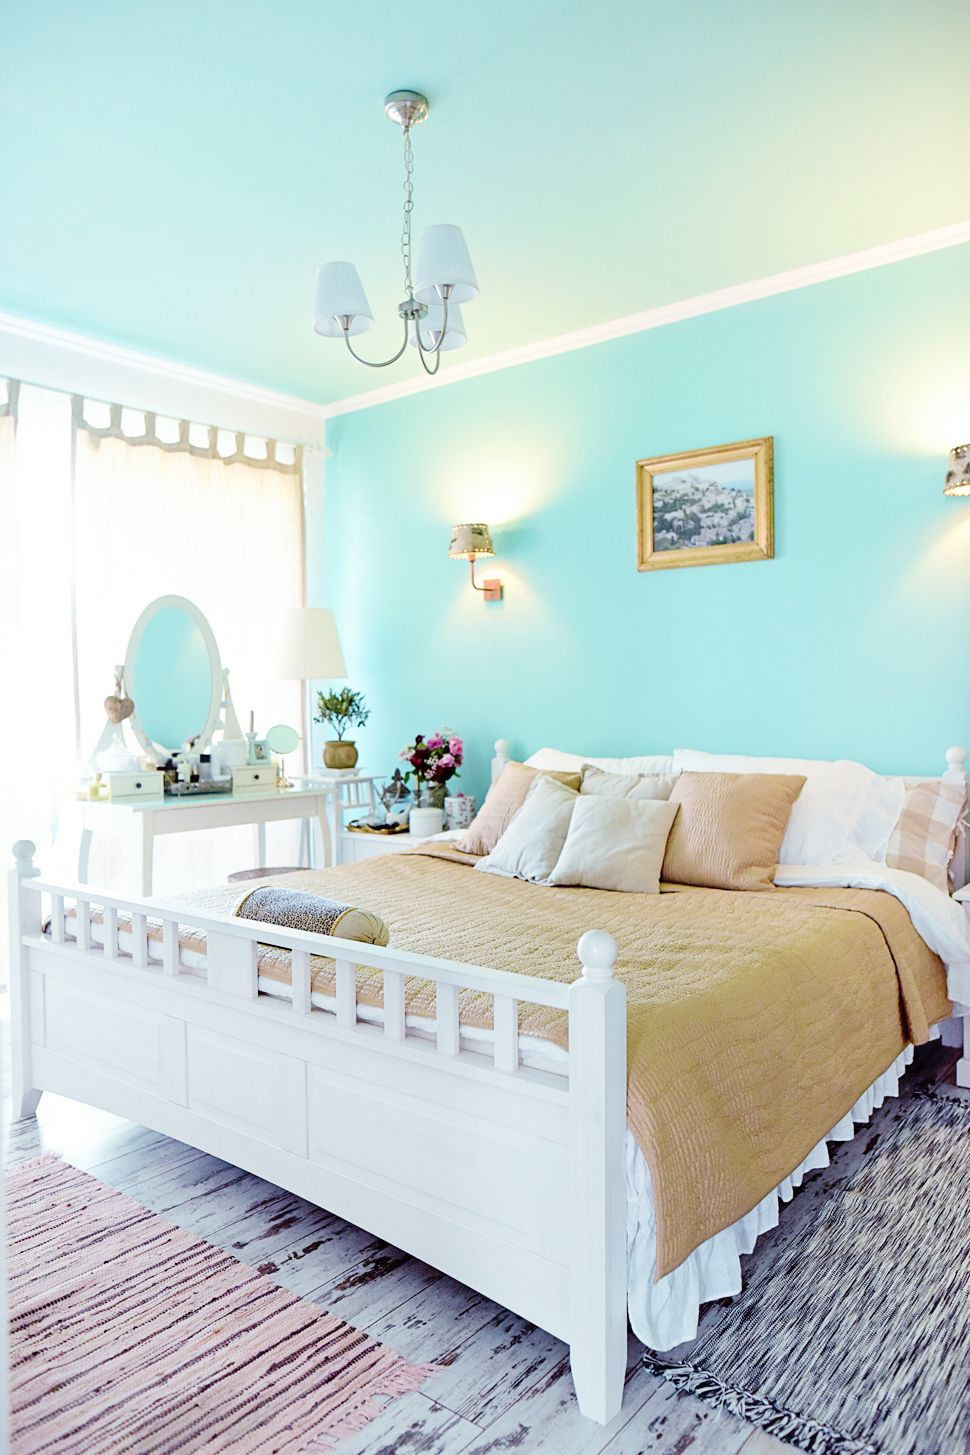 Mint Green And White Home Decor Gold Details